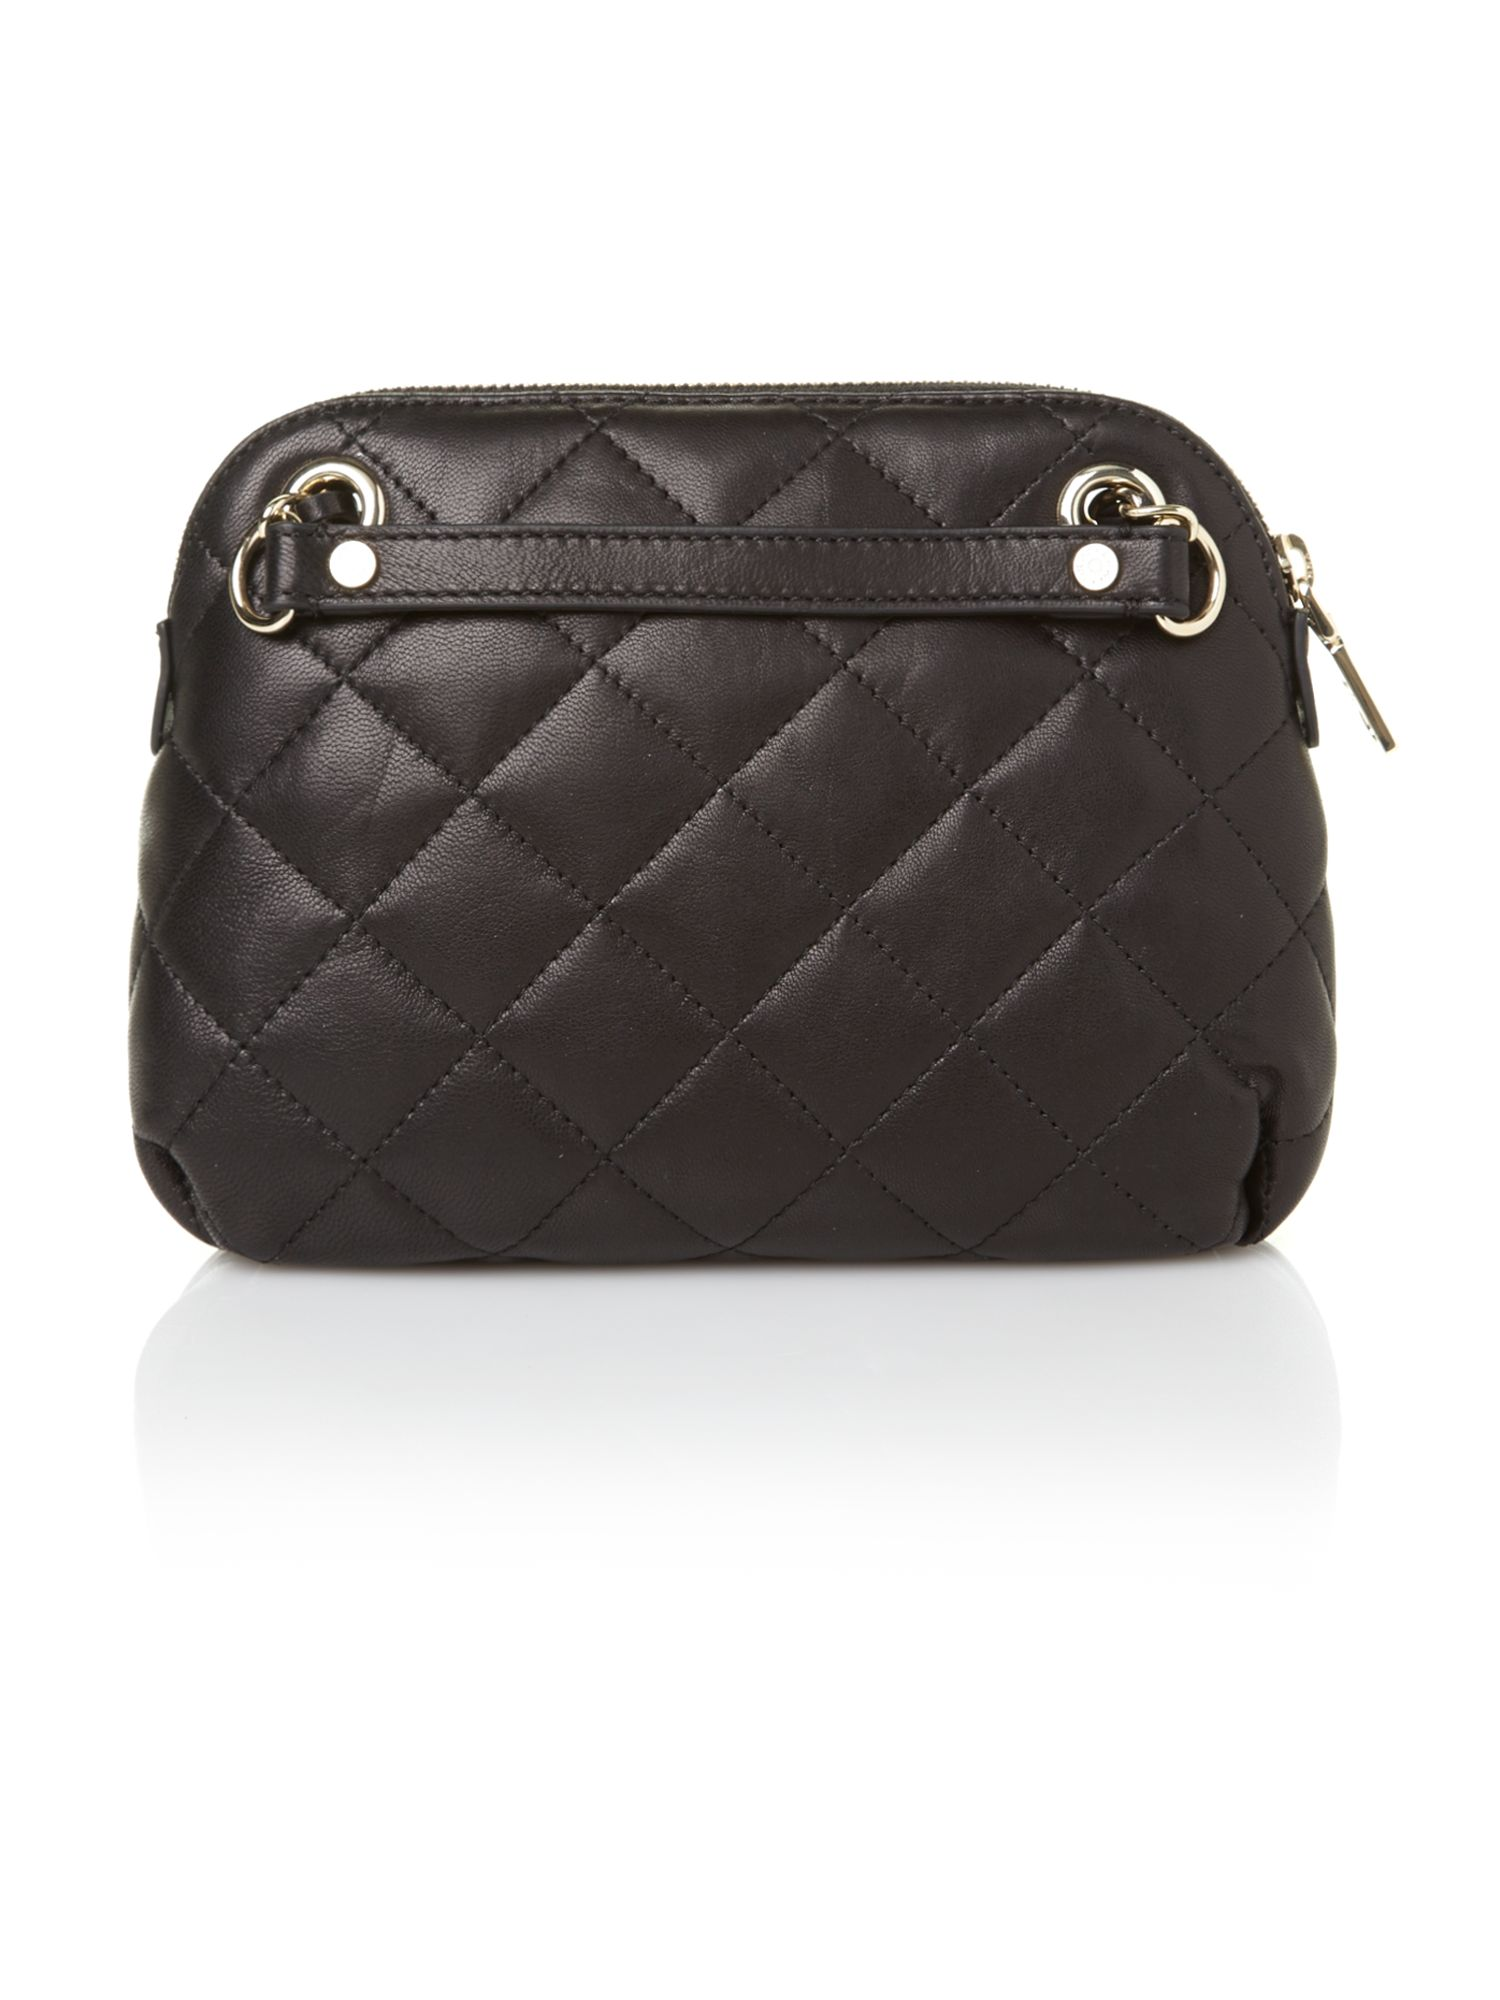 Items quilted black small crossbody bag